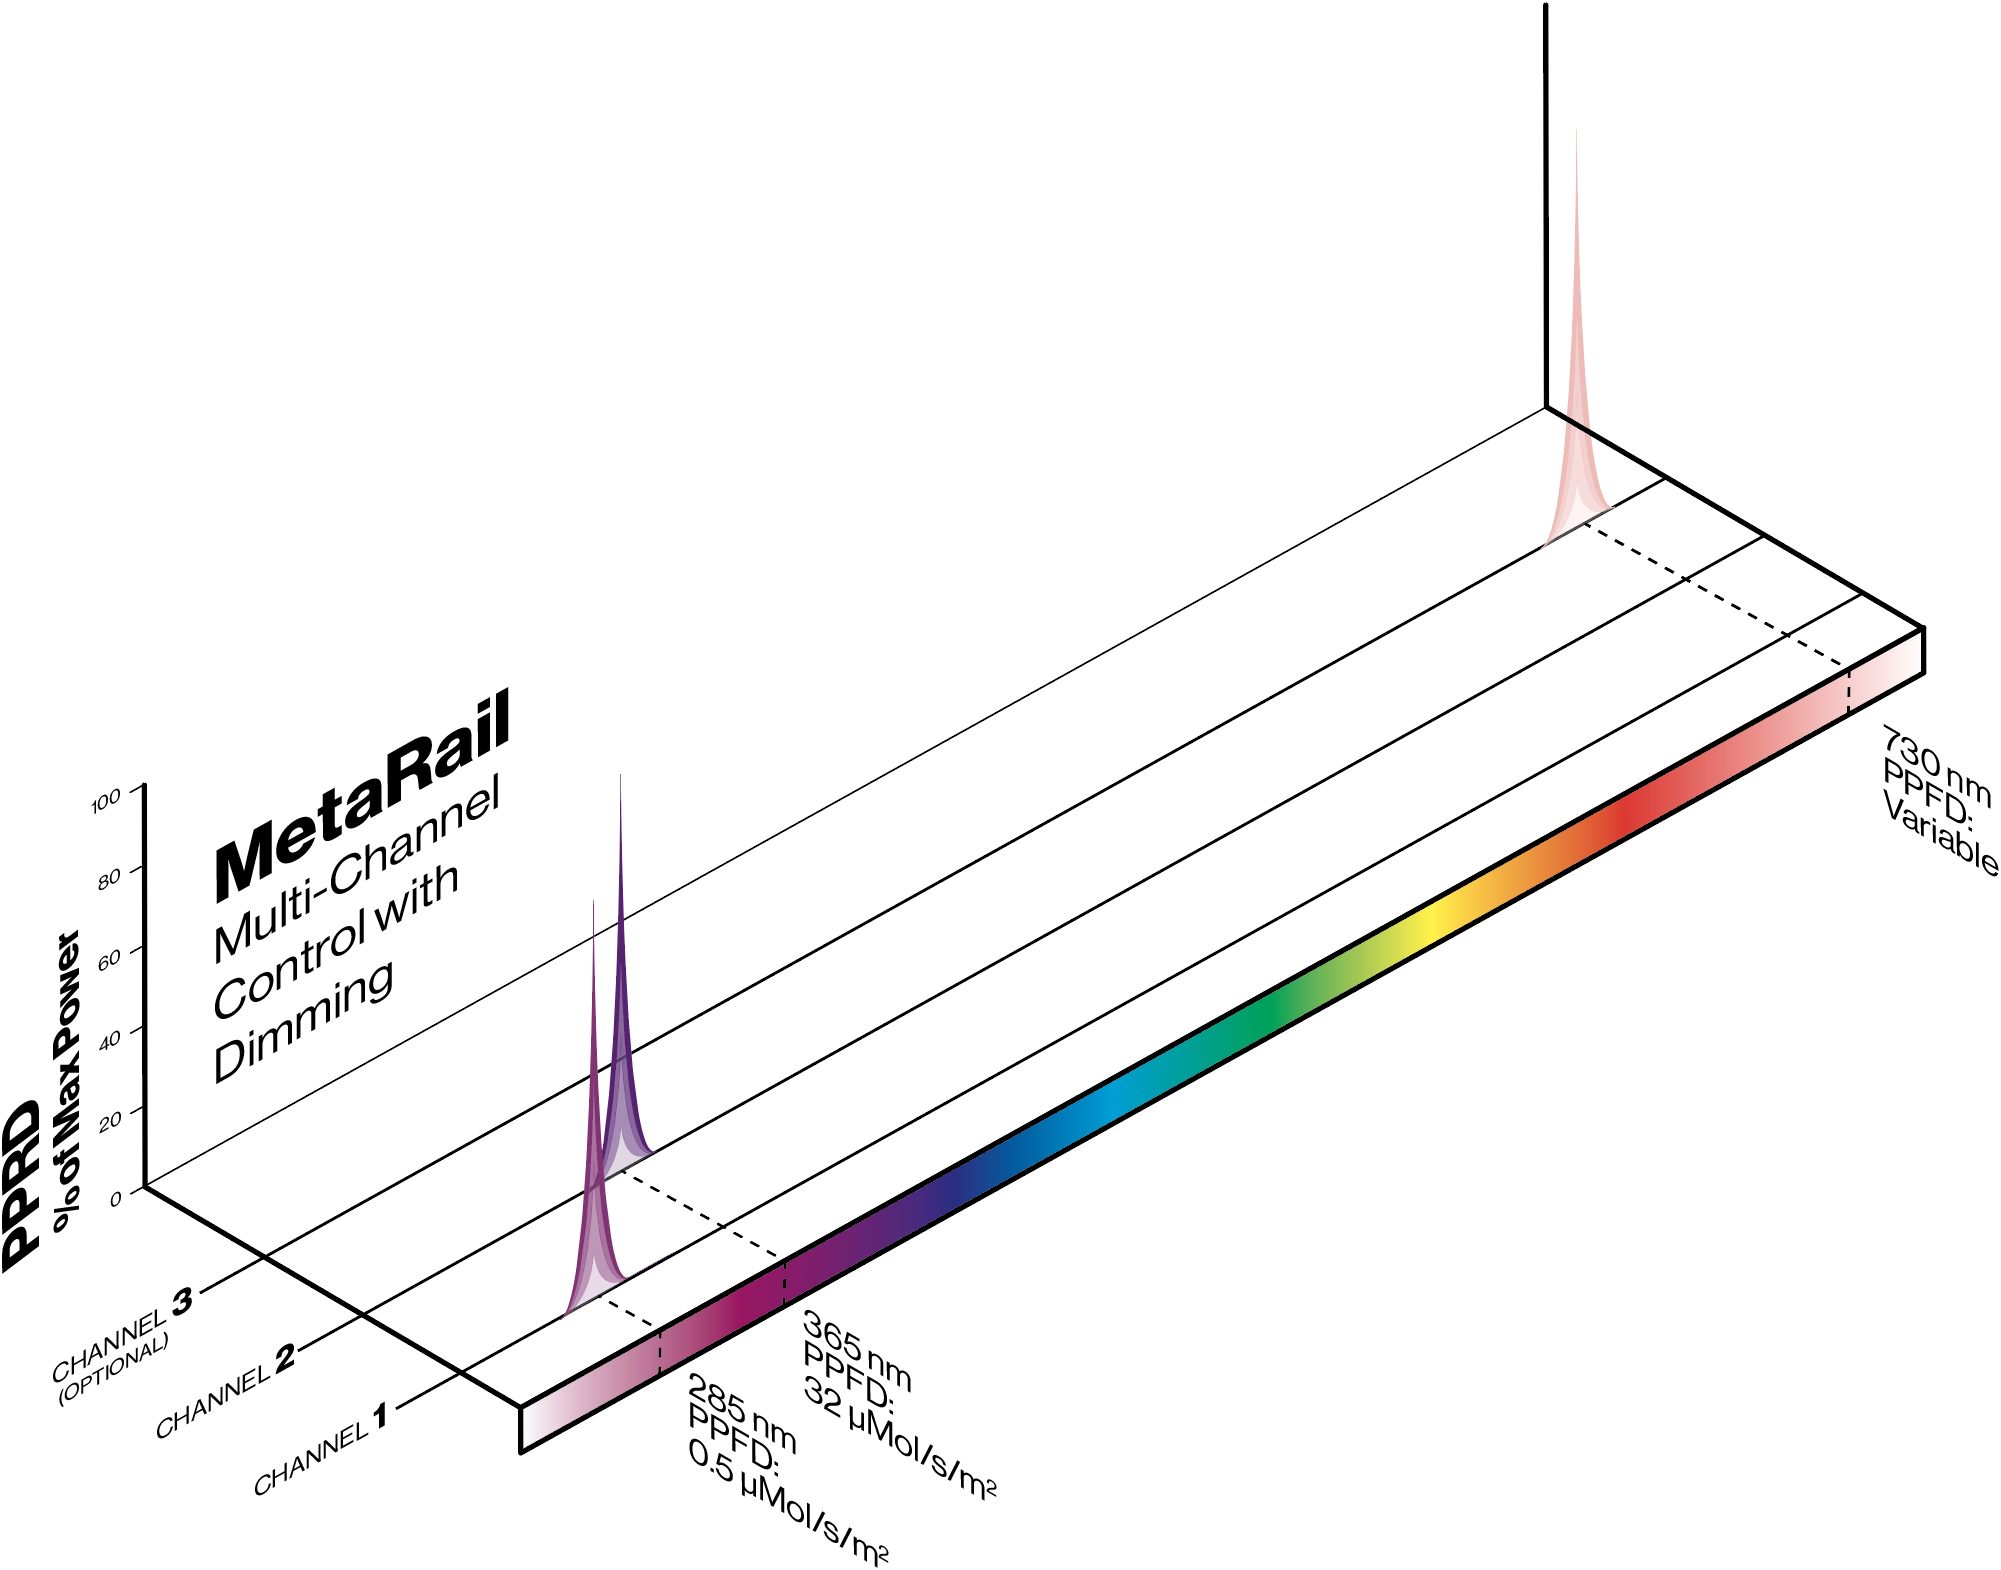 MetaRail_Spectrum.png